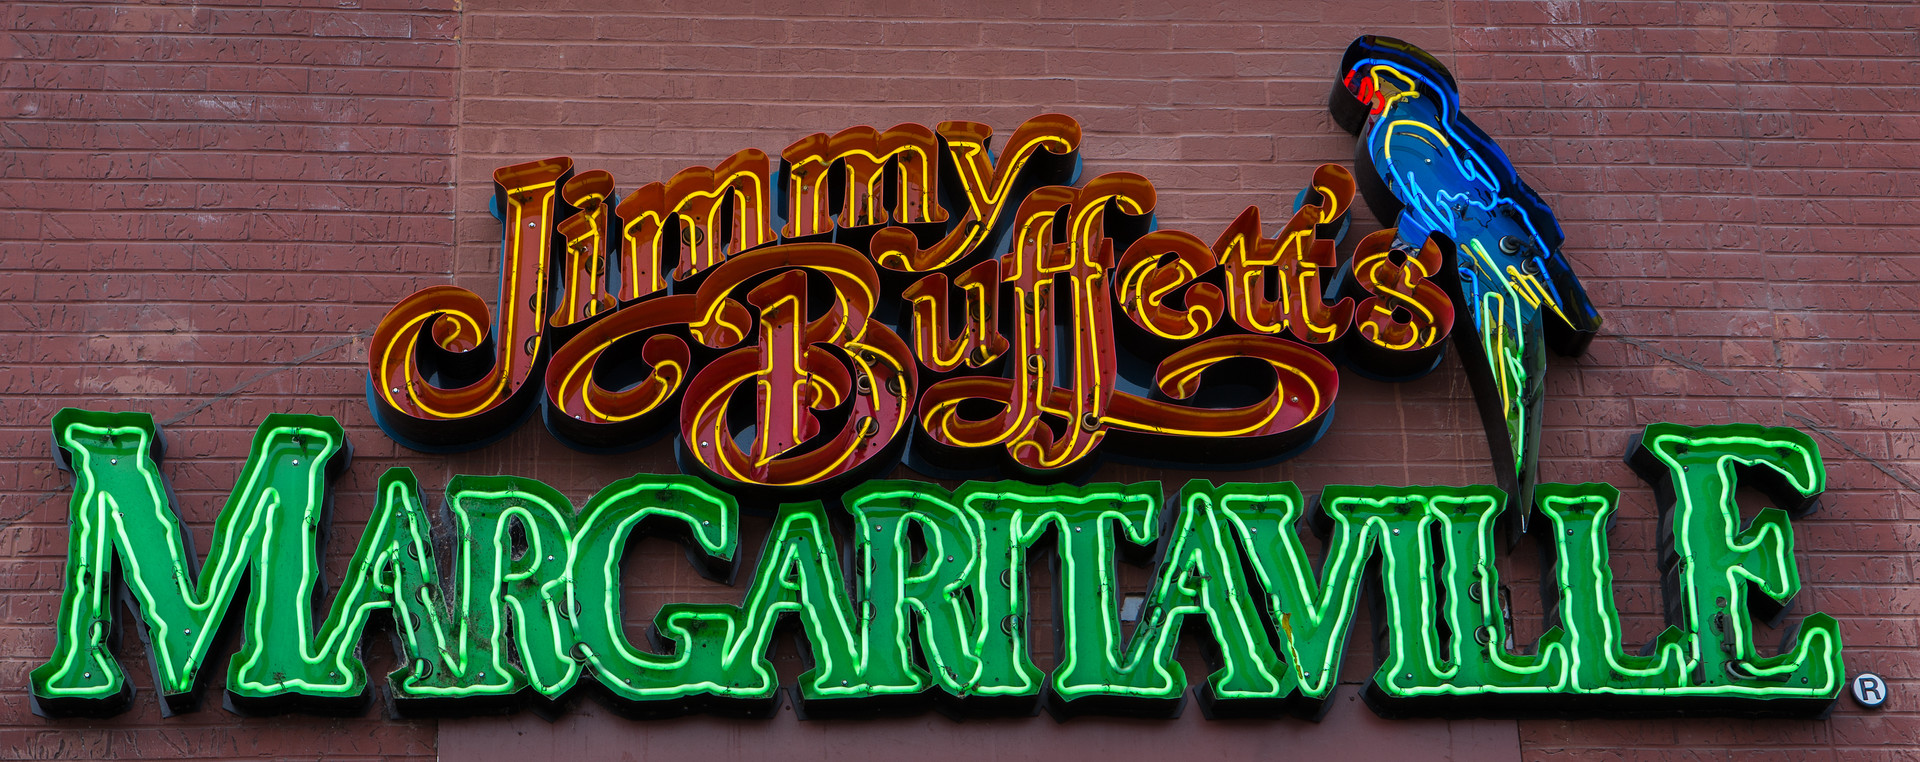 Jimmy-Buffet.jpg